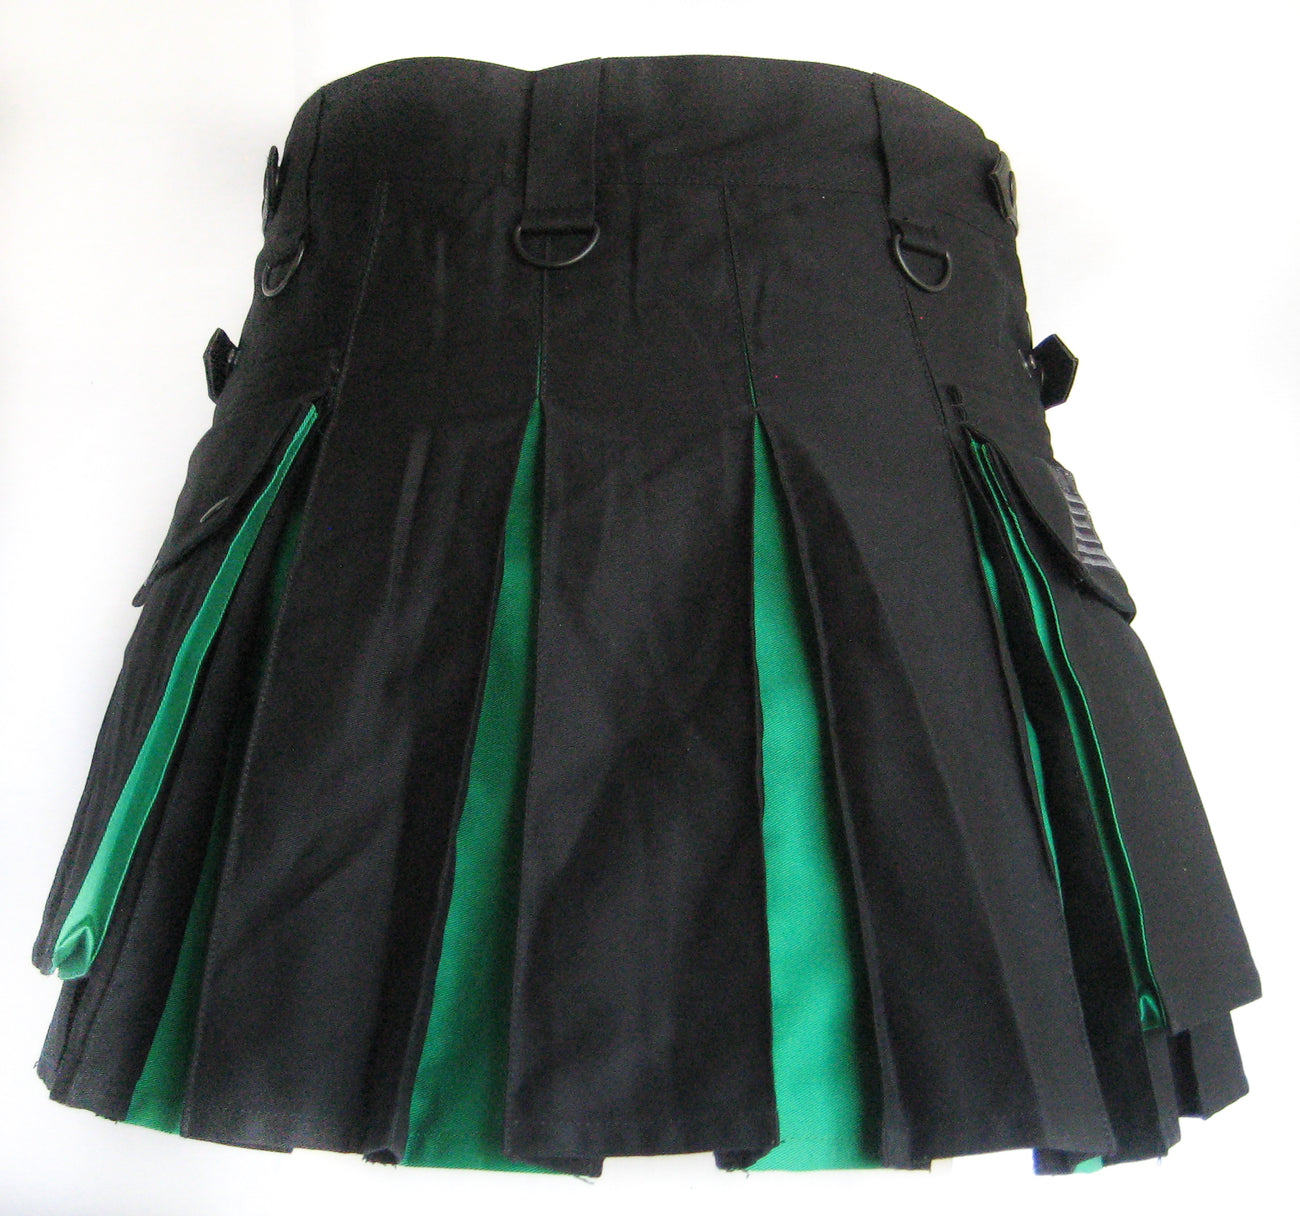 Women's Two Tone Kilt - Black and Green